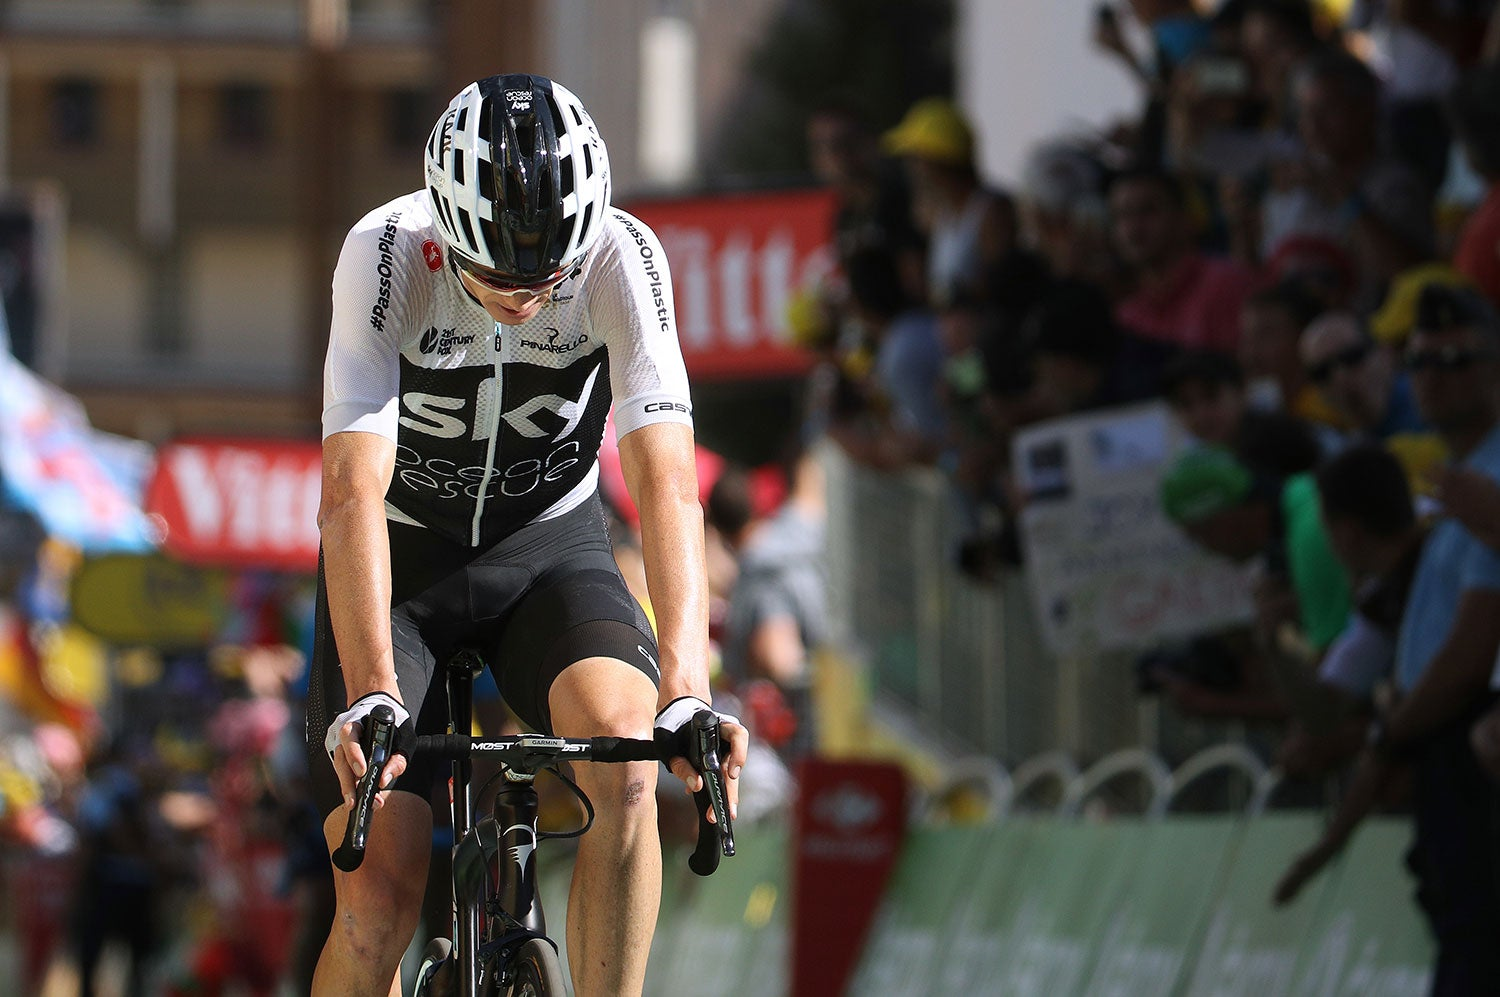 Froome endures abuse on Alpe d Huez 2c2354001